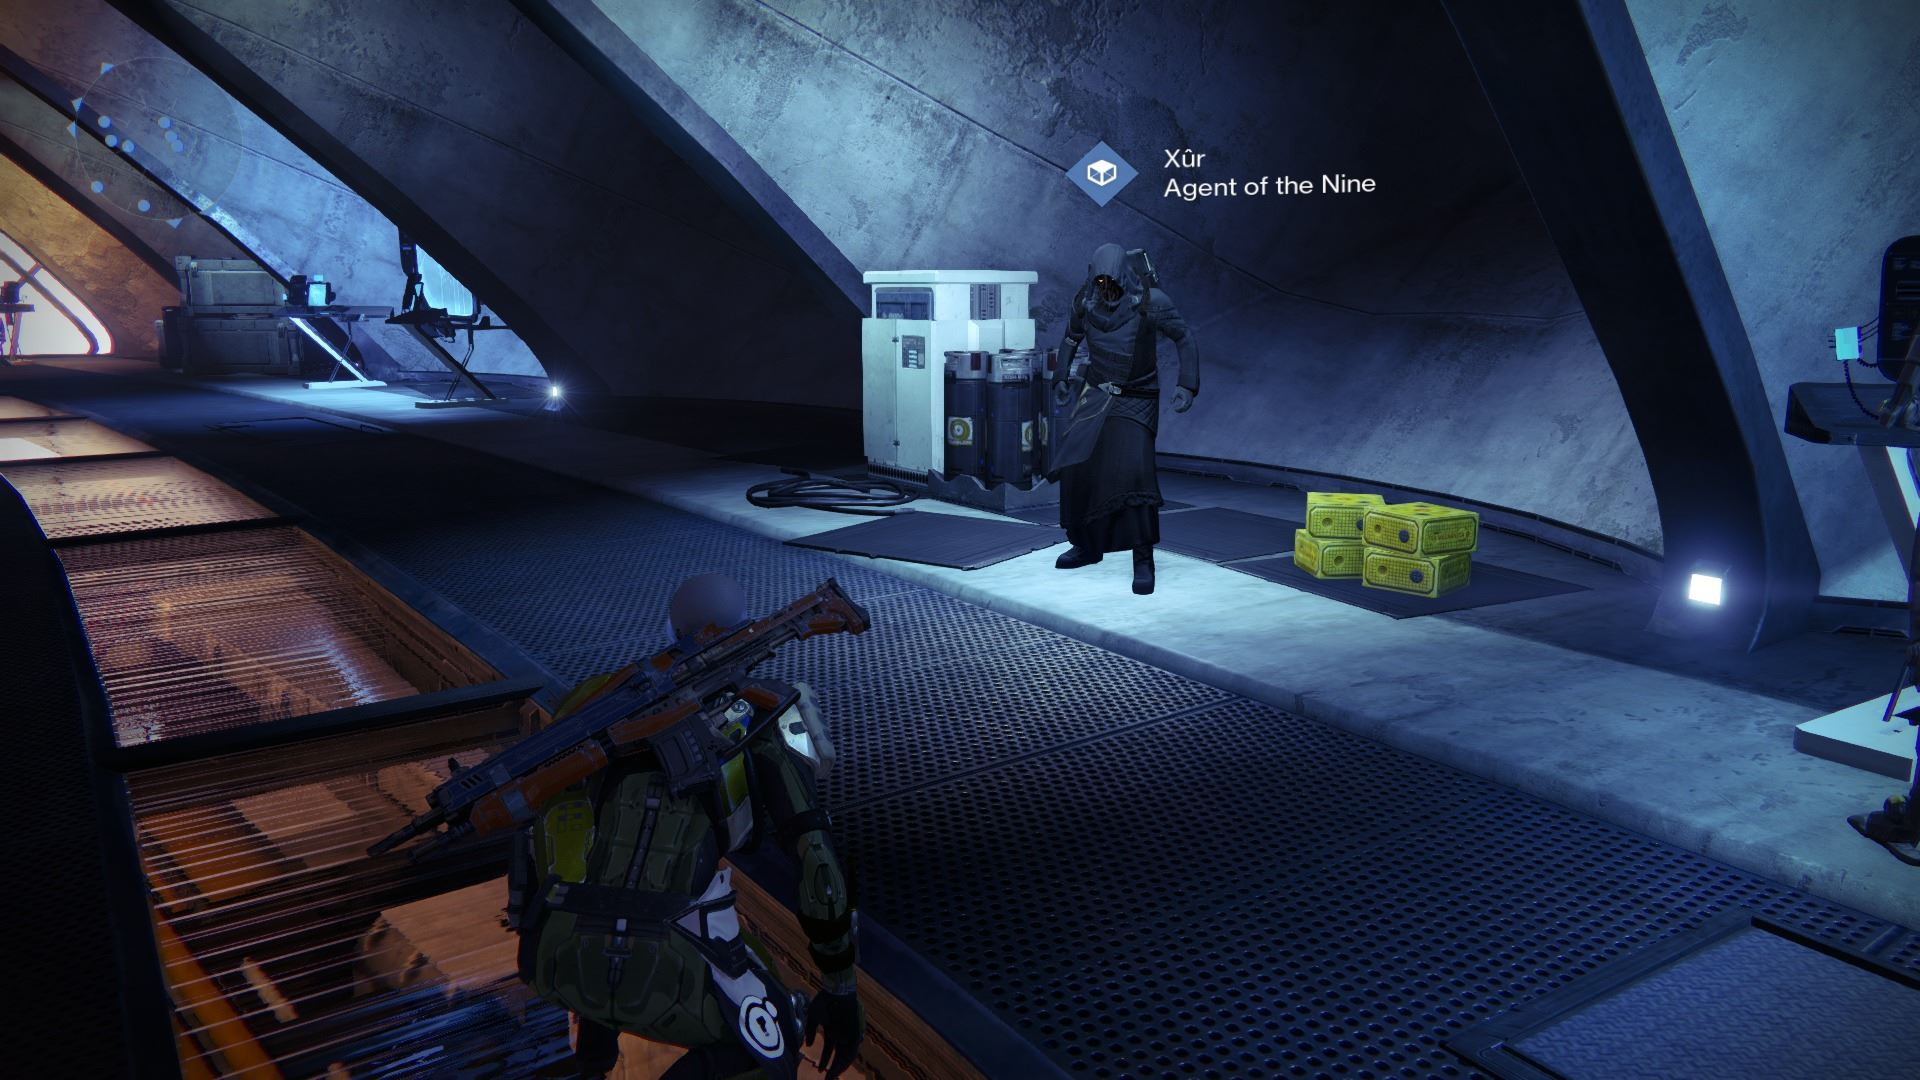 Destiny xur location and inventory for october 24 25 vg247